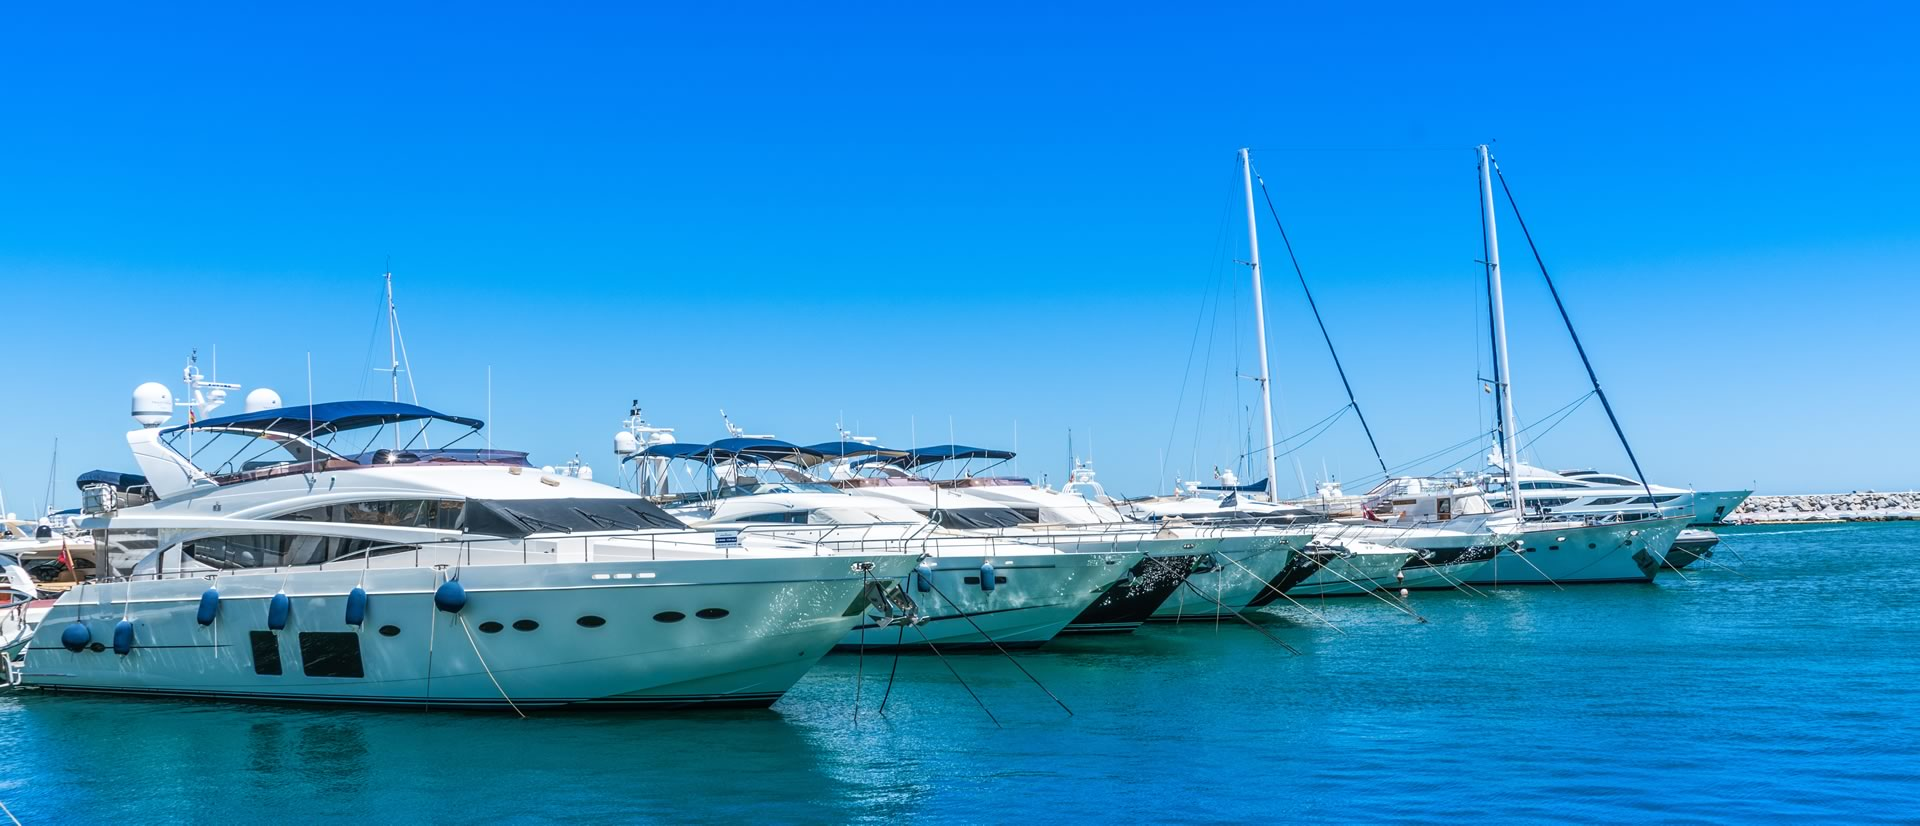 About Siebert Yacht Management